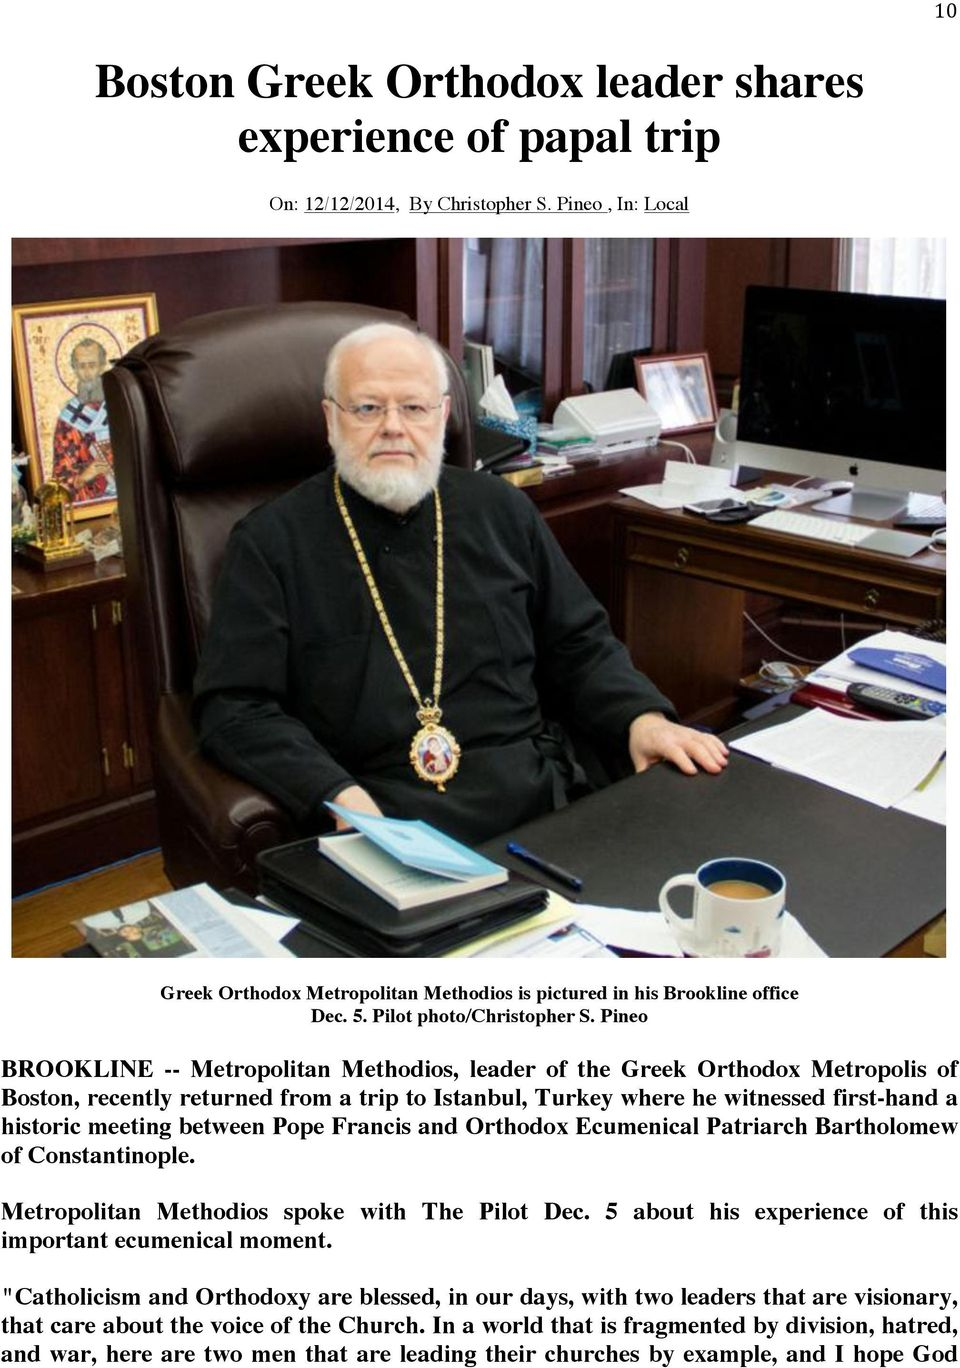 Pineo BROOKLINE -- Metropolitan Methodios, leader of the Greek Orthodox Metropolis of Boston, recently returned from a trip to Istanbul, Turkey where he witnessed first-hand a historic meeting